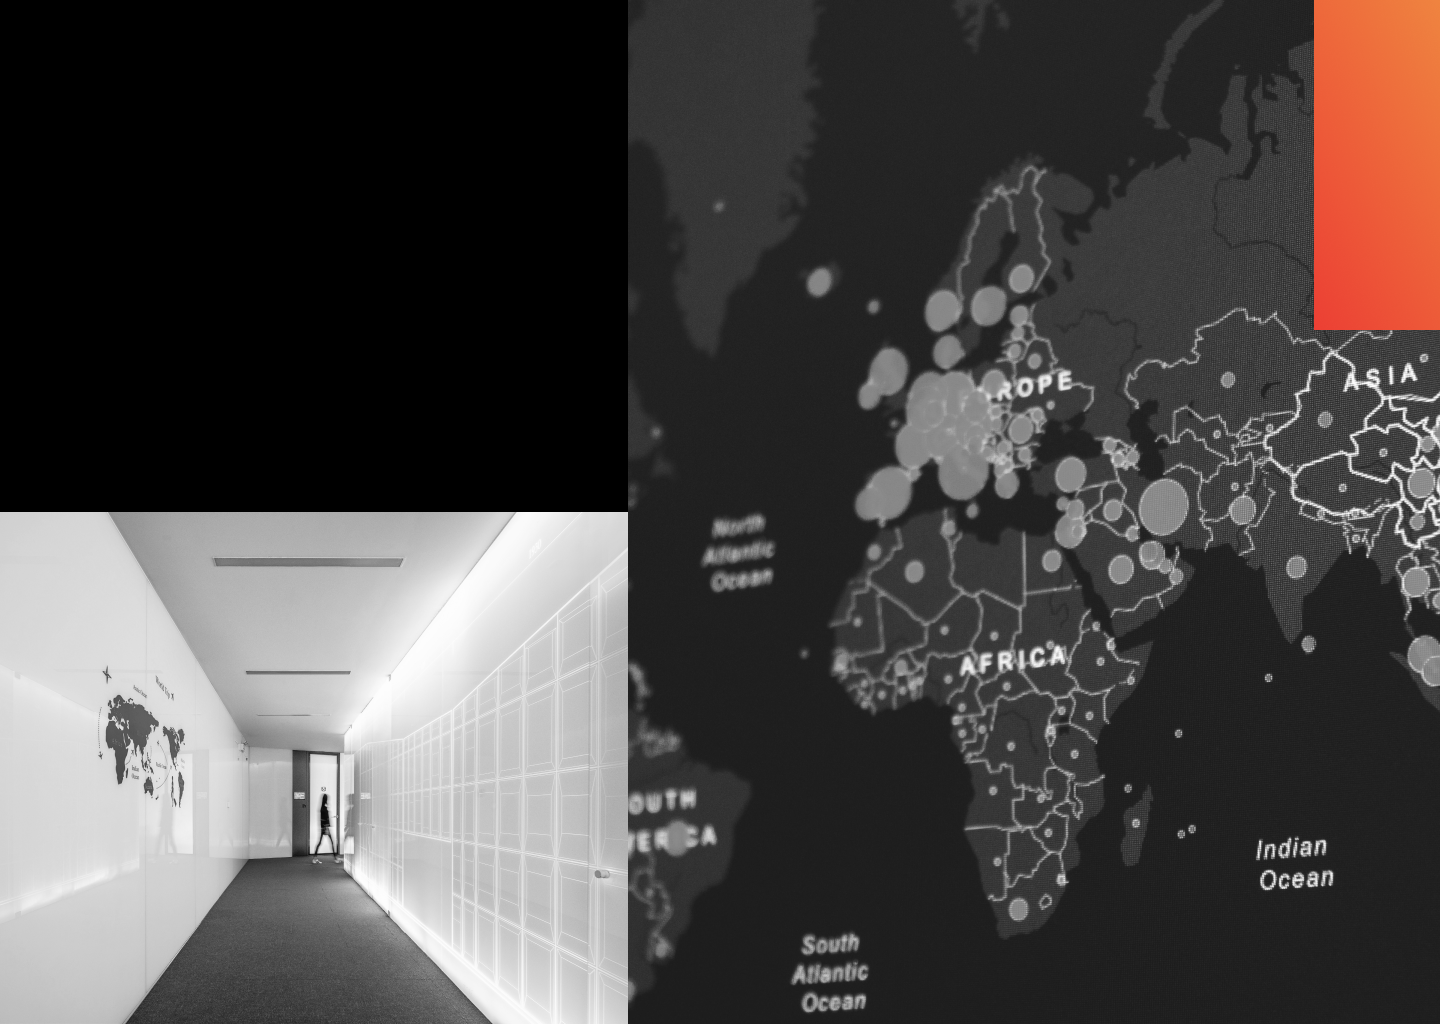 An empty hallway and a map of the globe with hotspots